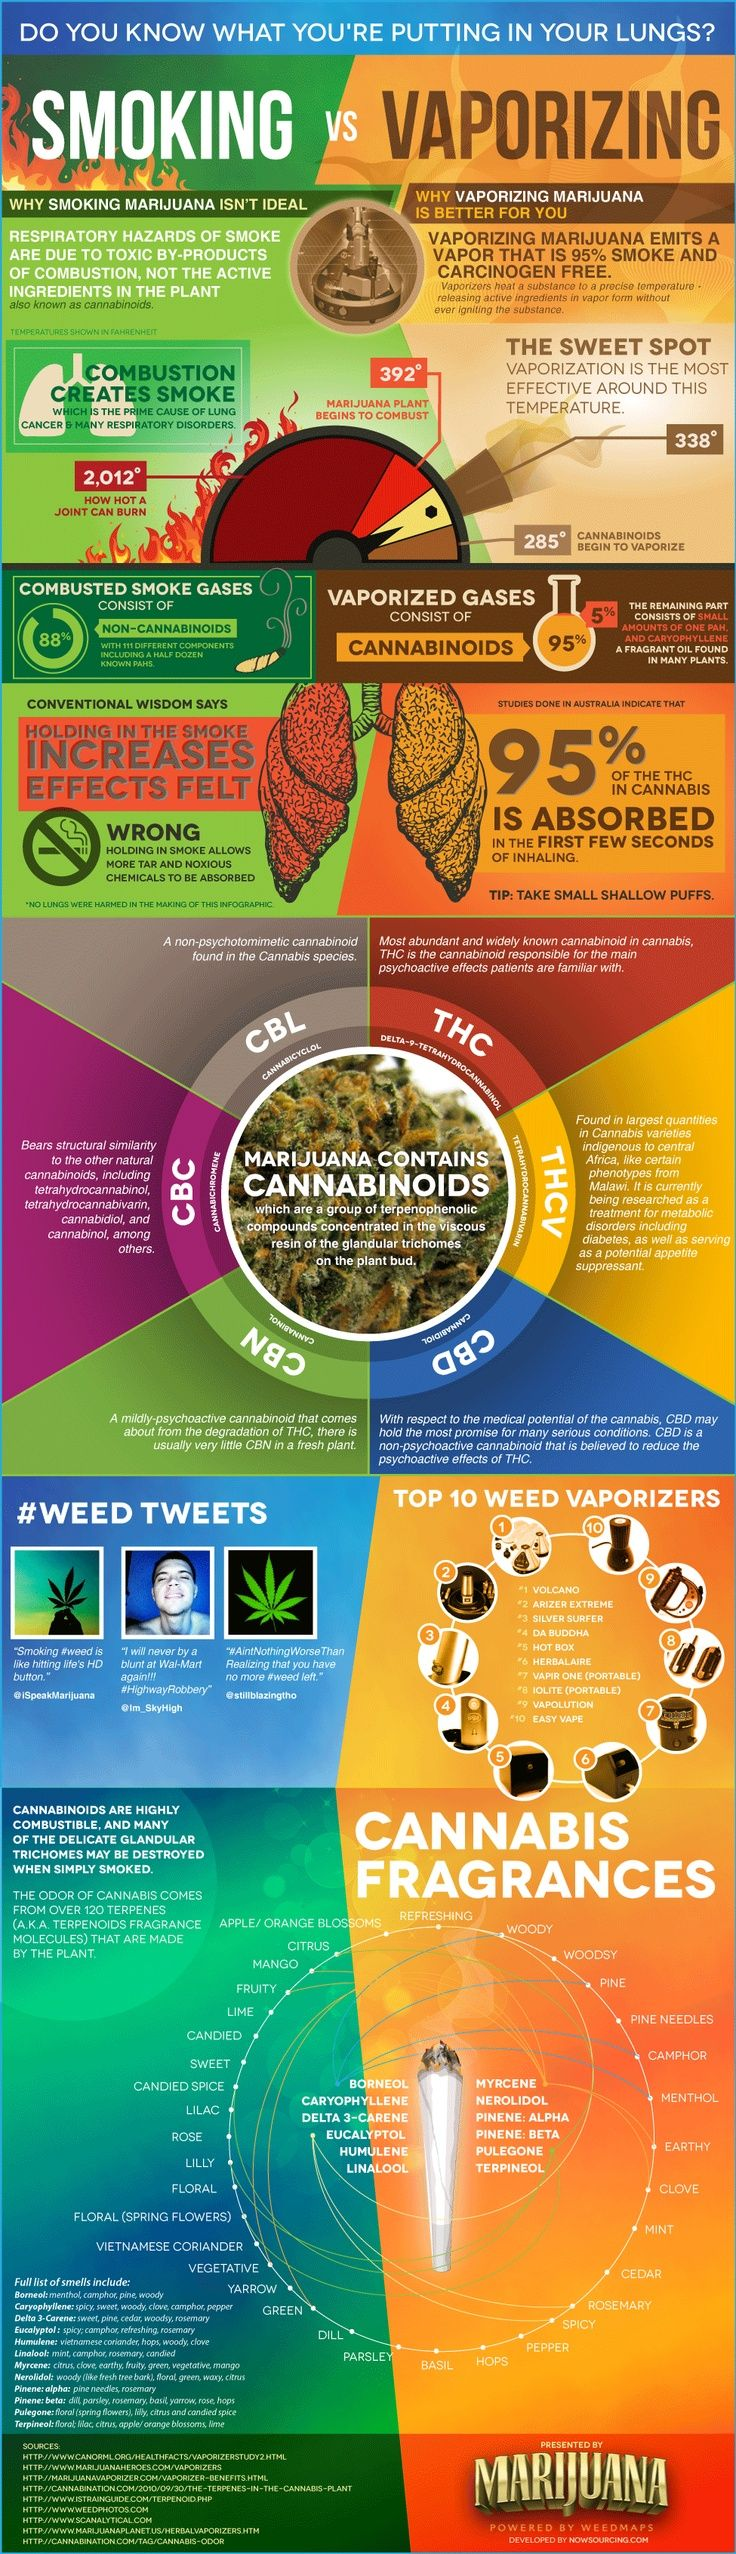 Marijuana – Smoking vs Vaporizing (Infographic)